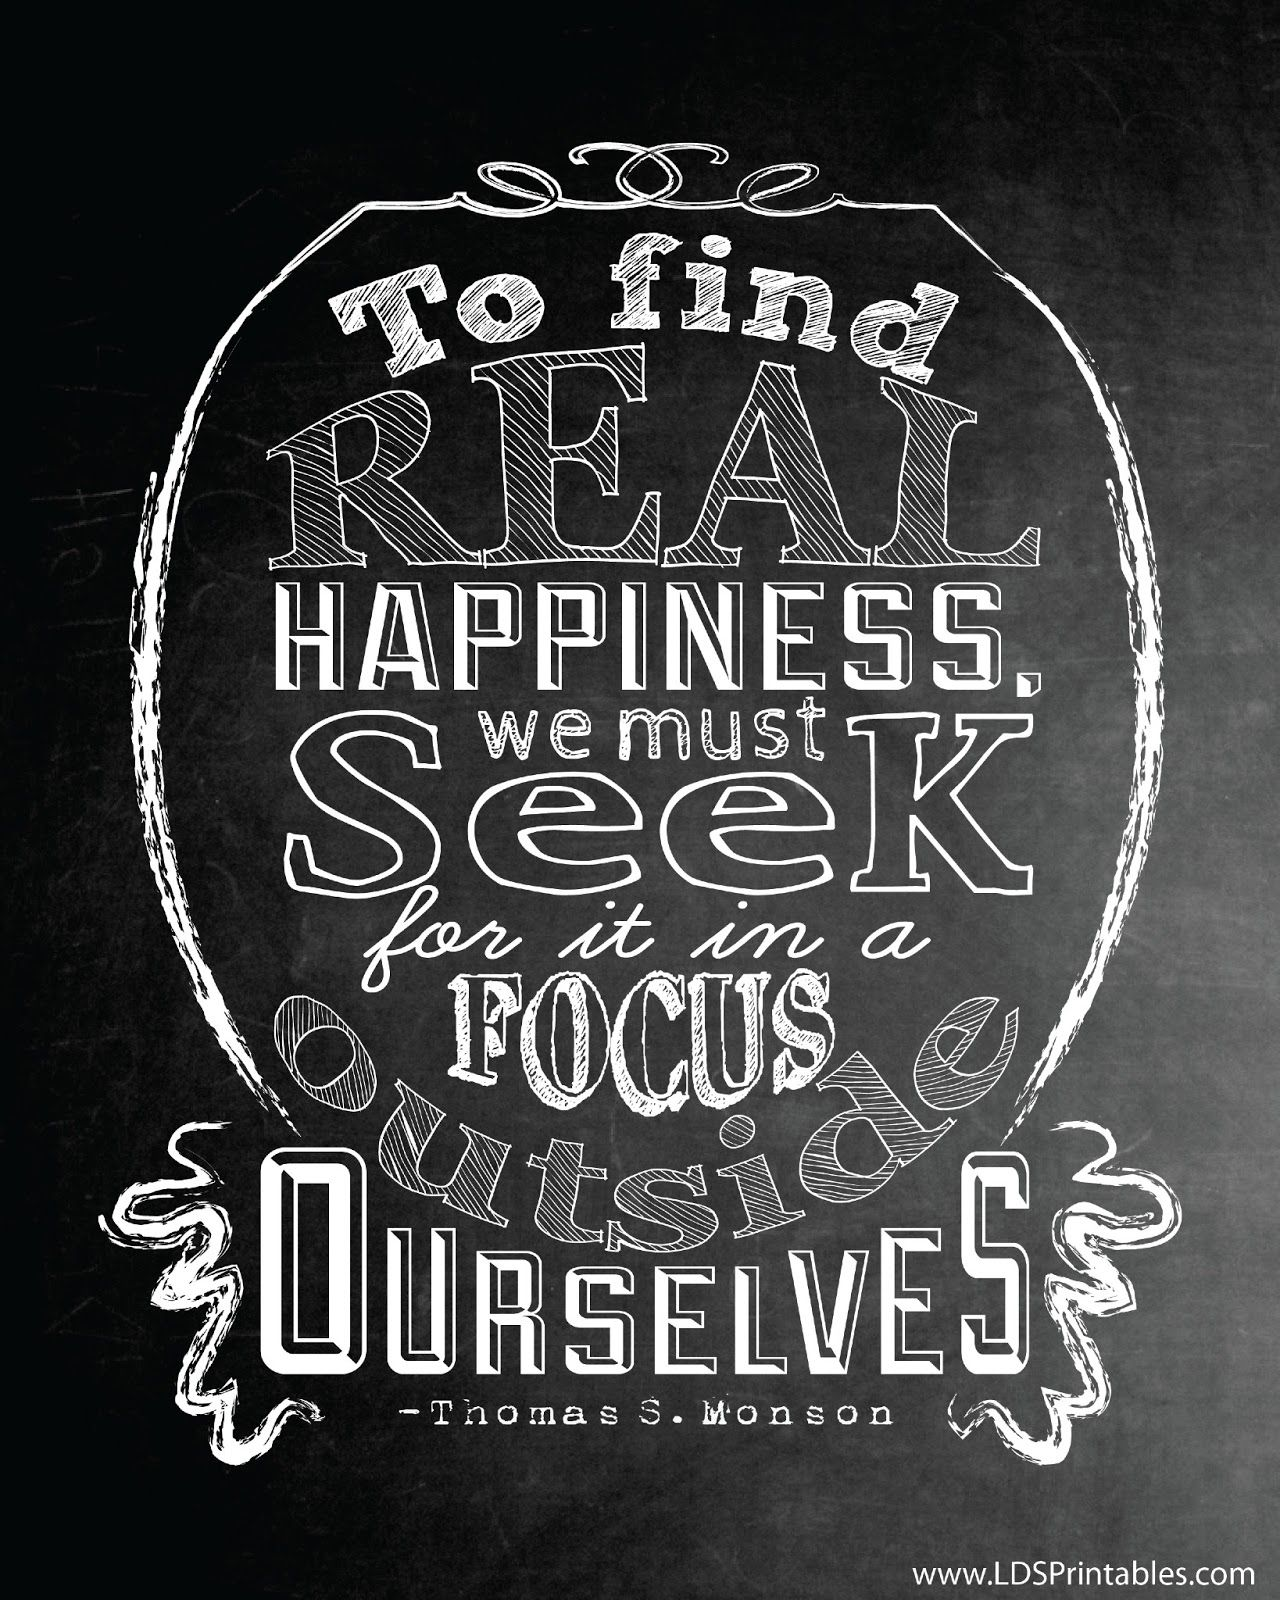 lds printables real happiness time and talents words